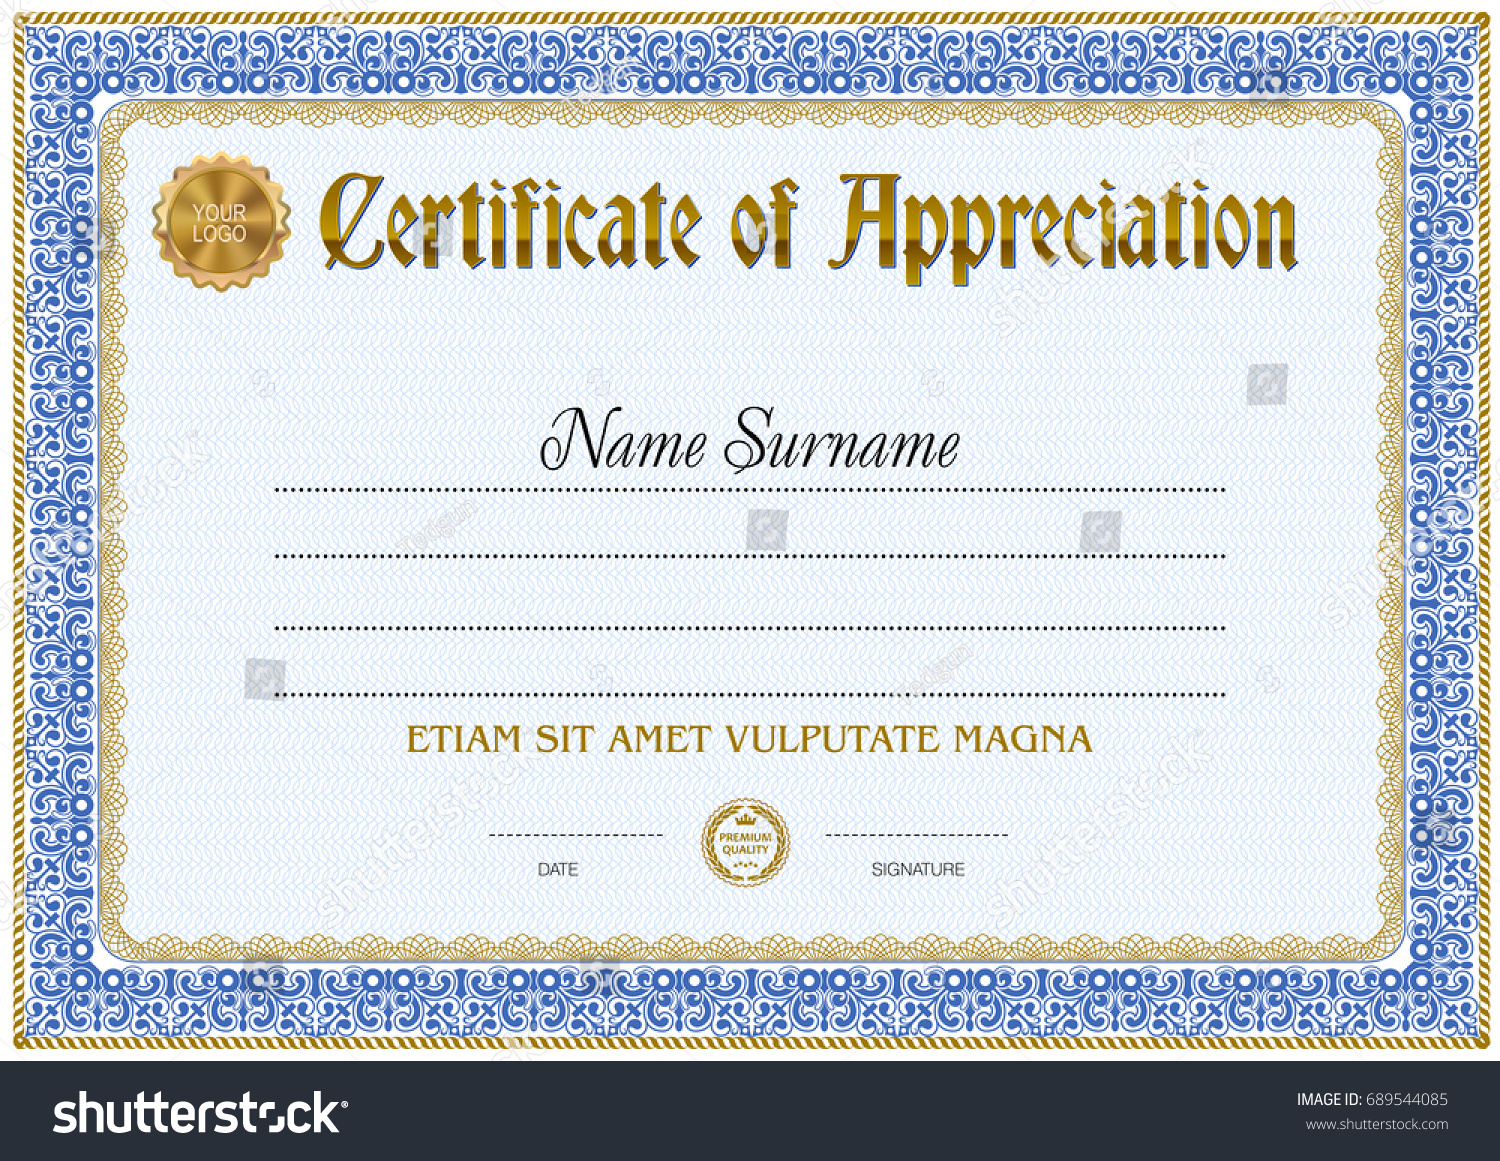 Certificate of appreciation blank template gallery certificate certificate blank templatetextured background empty text stock certificate blank templatetextured background with empty text area blue yadclub Image collections